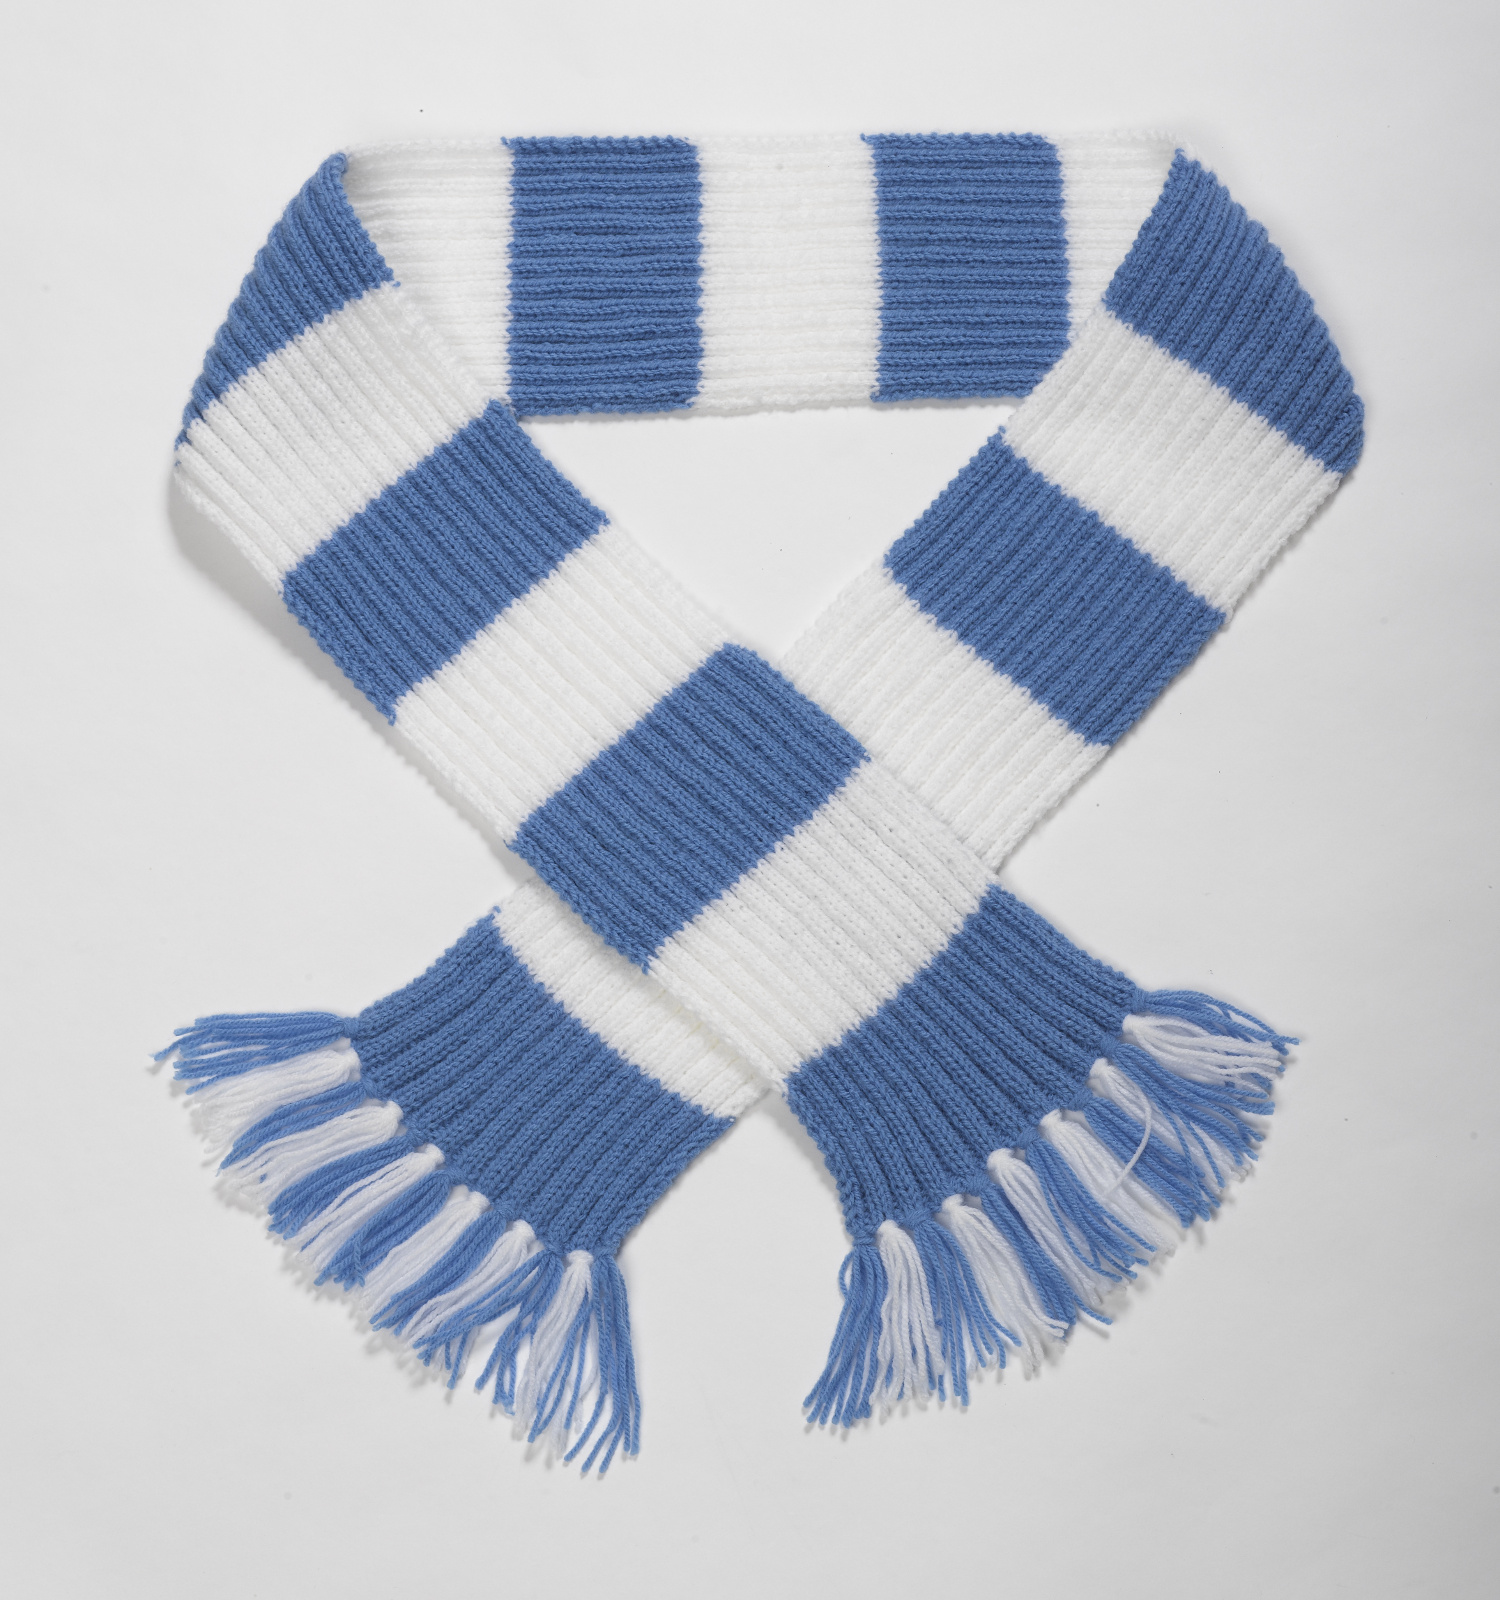 Knitting Pattern Wool Kits : Striped Football Scarf Double Knitting Pattern & Wool Premier League Craf...